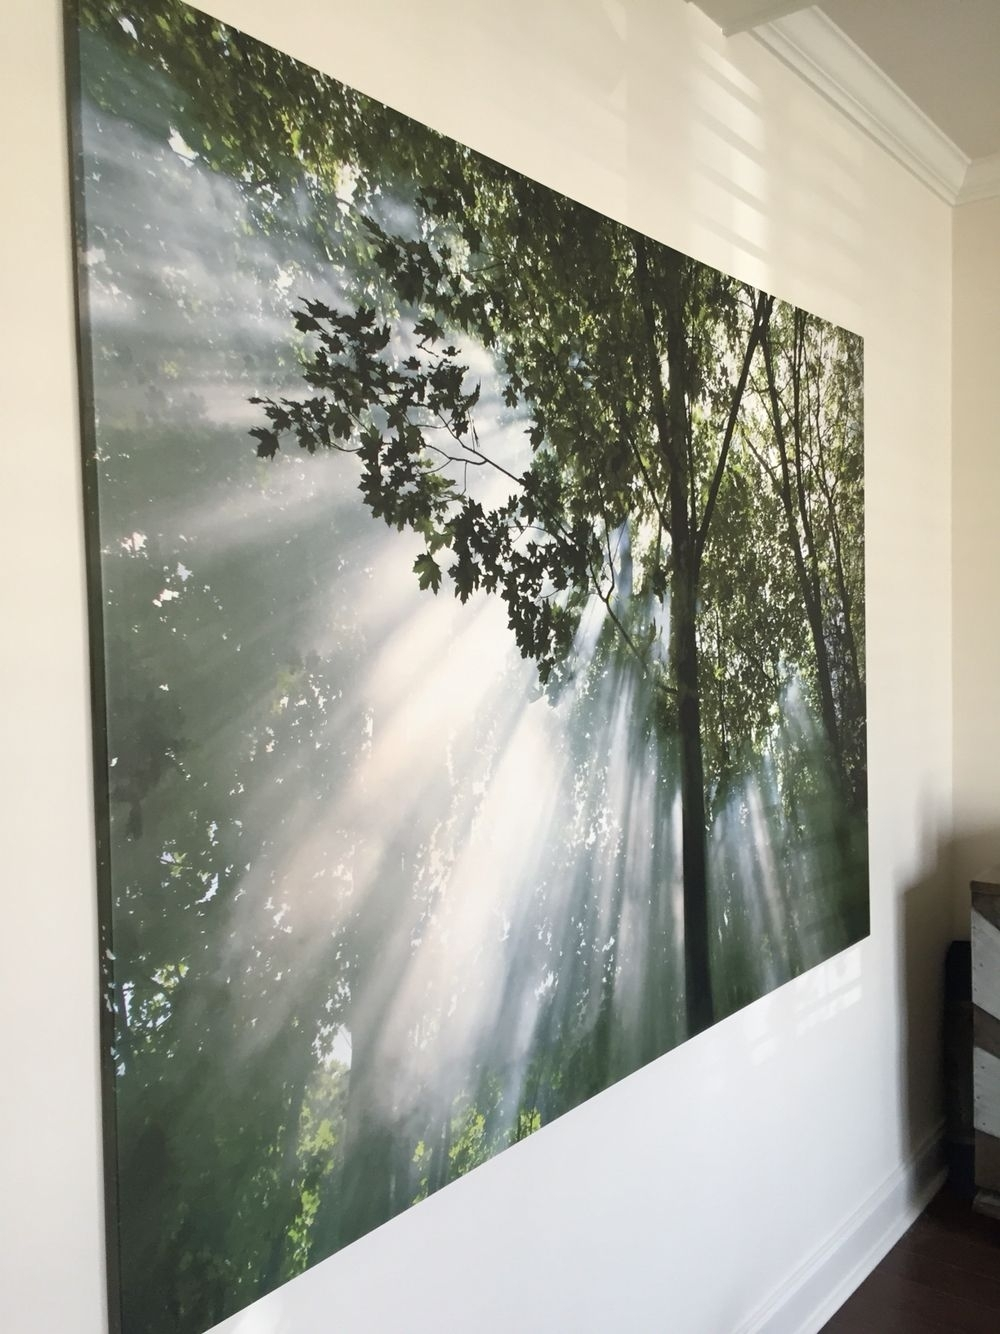 Yoga Room Wall Art This Is From Ikea! | Meditation Room Ideas Throughout Recent Ikea Wall Art (View 4 of 15)